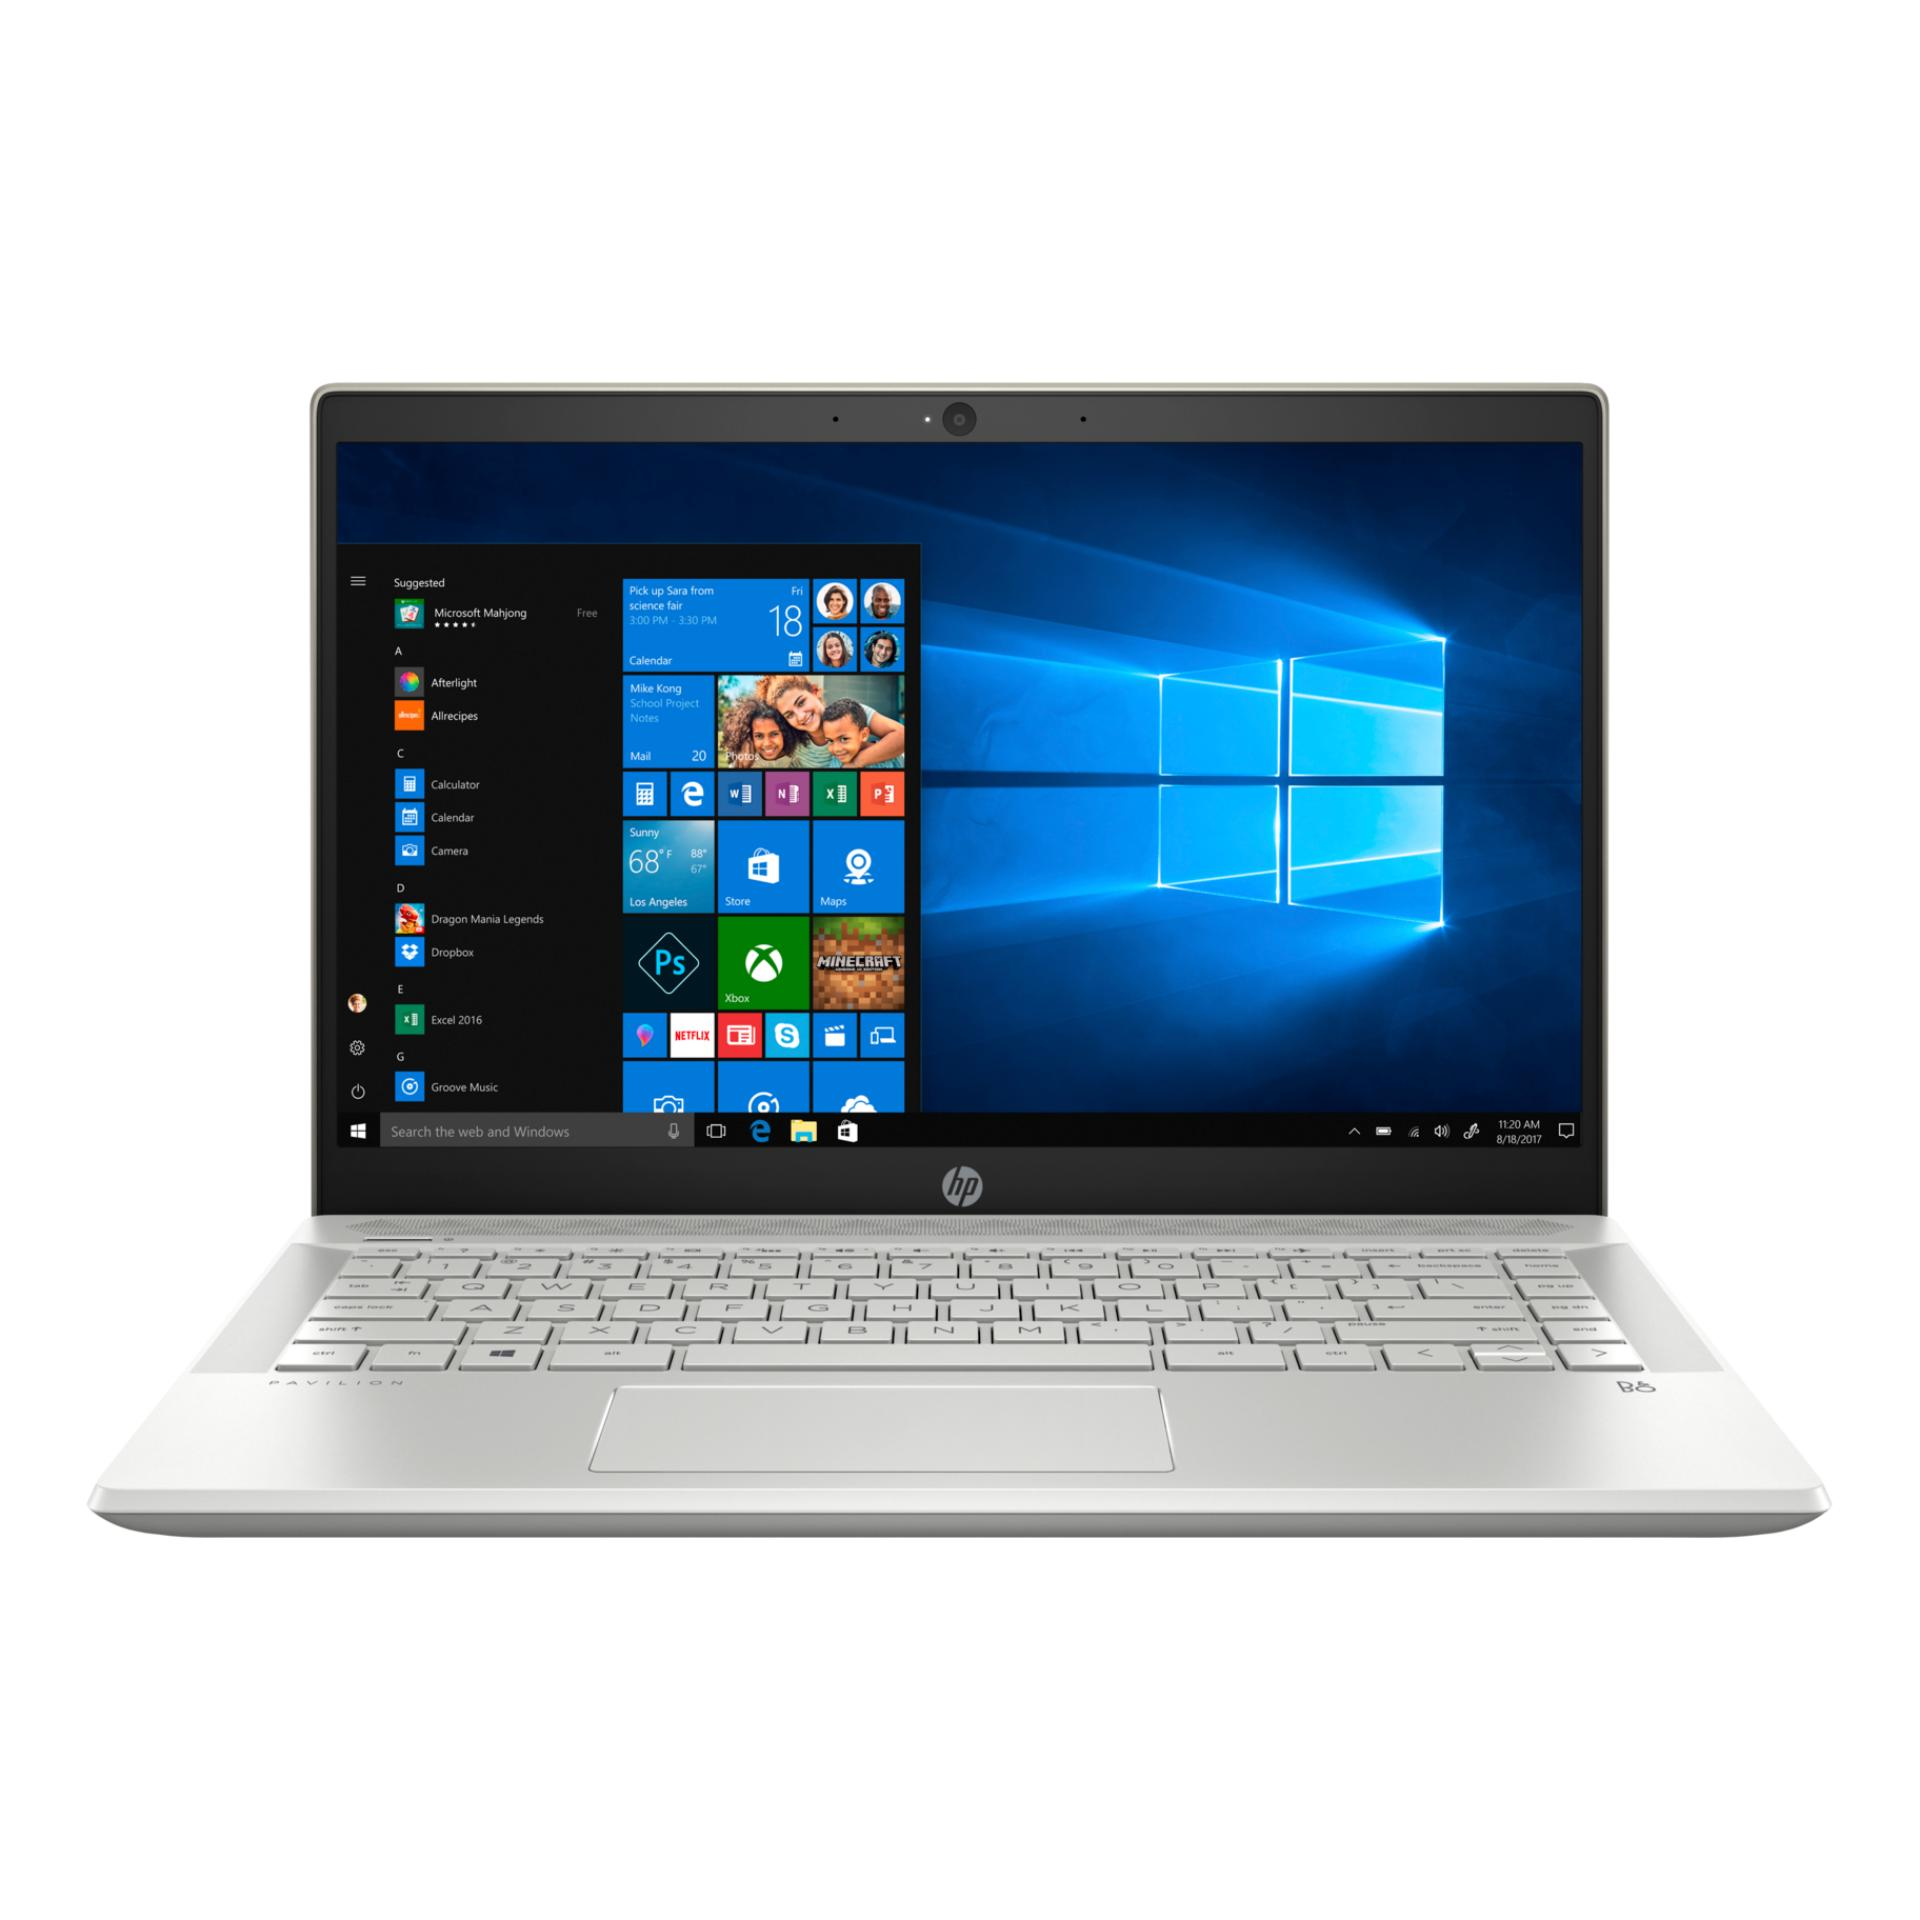 HP Pavilion - 14-ce0090tx (Online Exclusive)